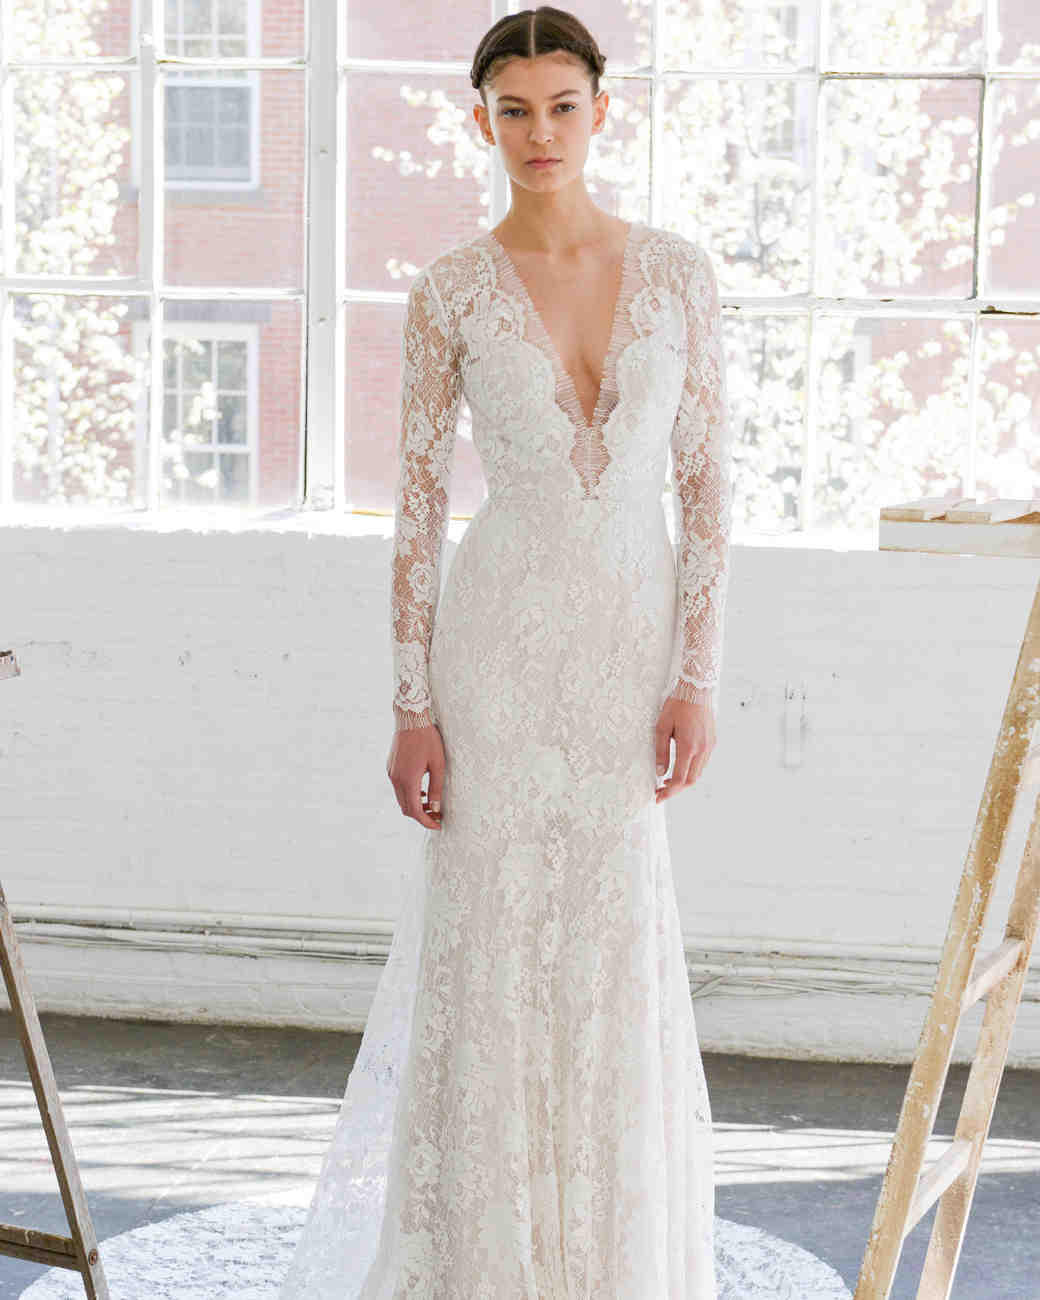 Lela Rose All Over Lace Mermaid Gown